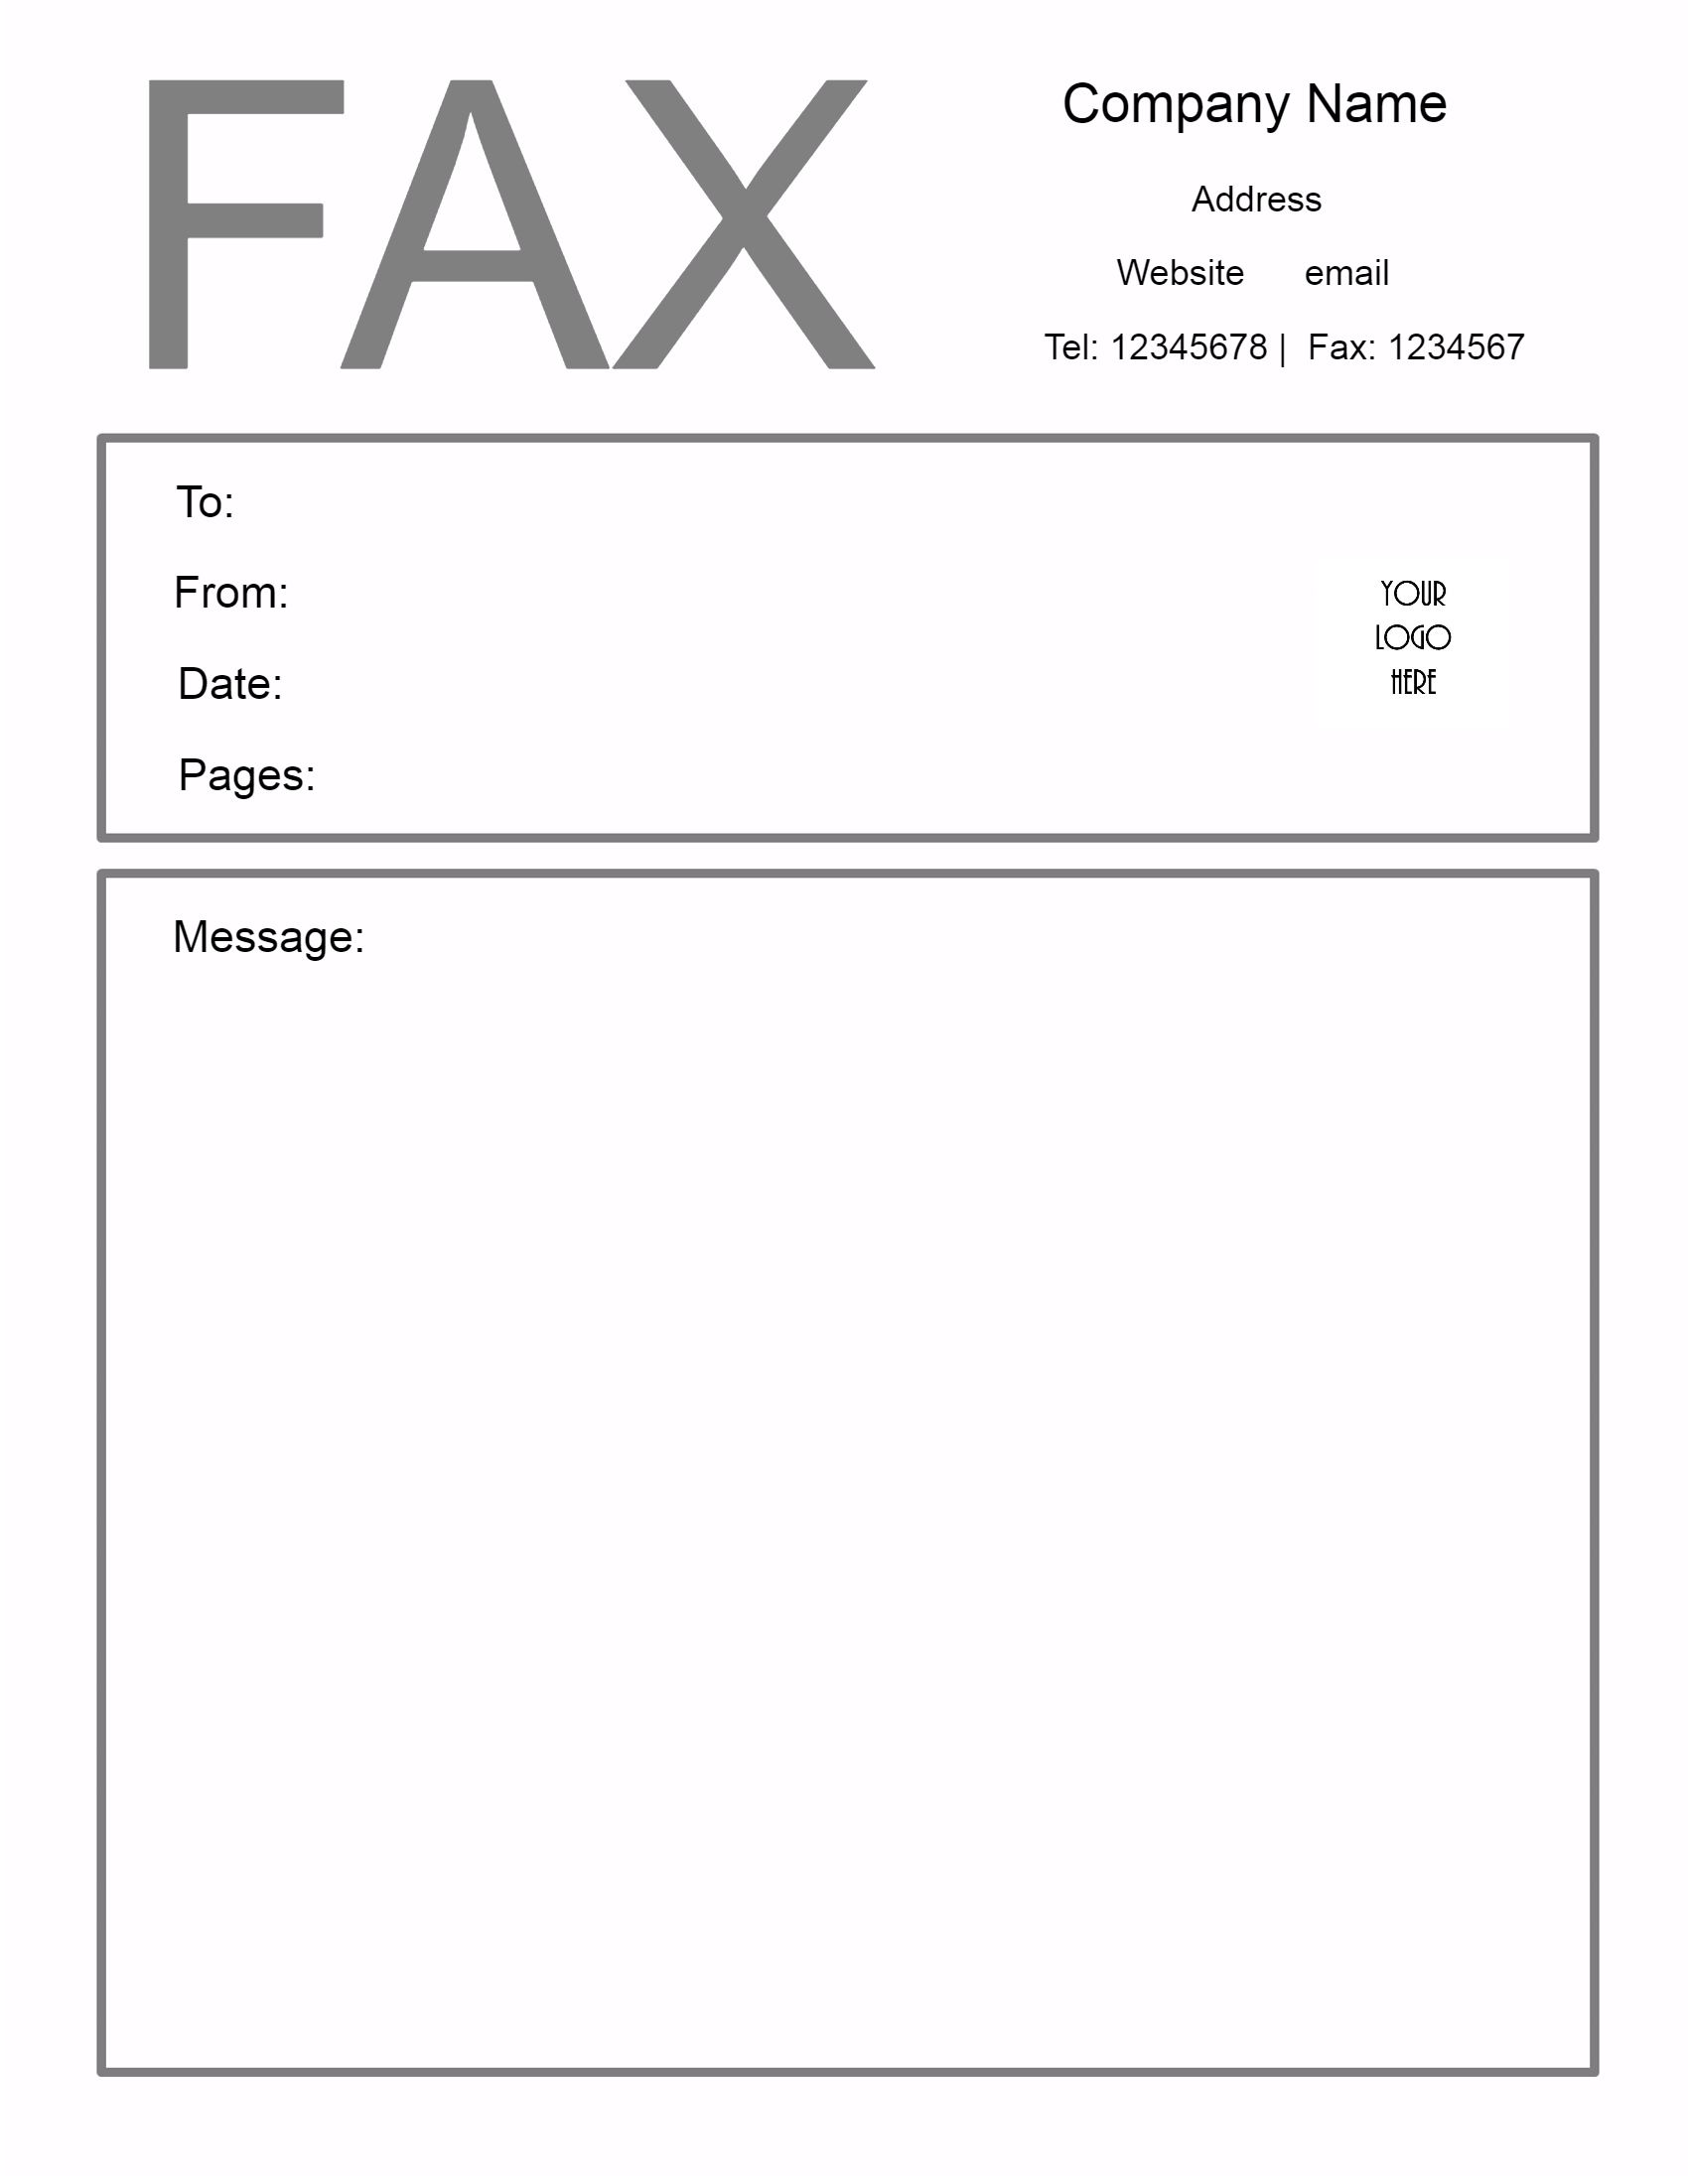 Fax Form Template Free fax cover sheet template microsoft word – Free Fax Templates